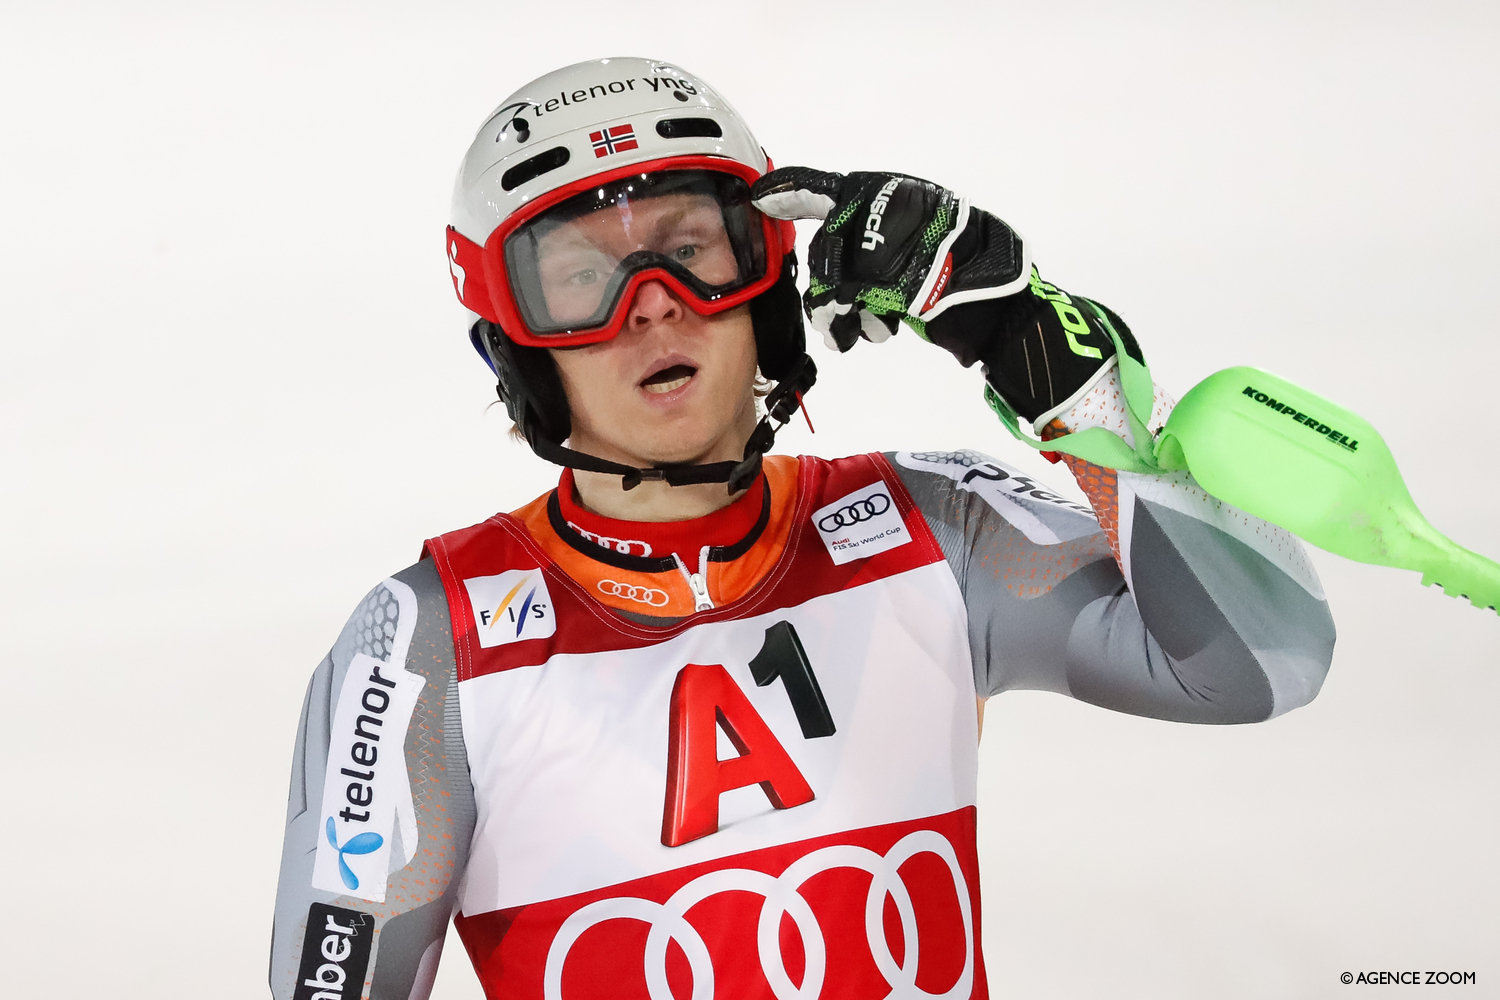 What a night 4 Kristoffersen!